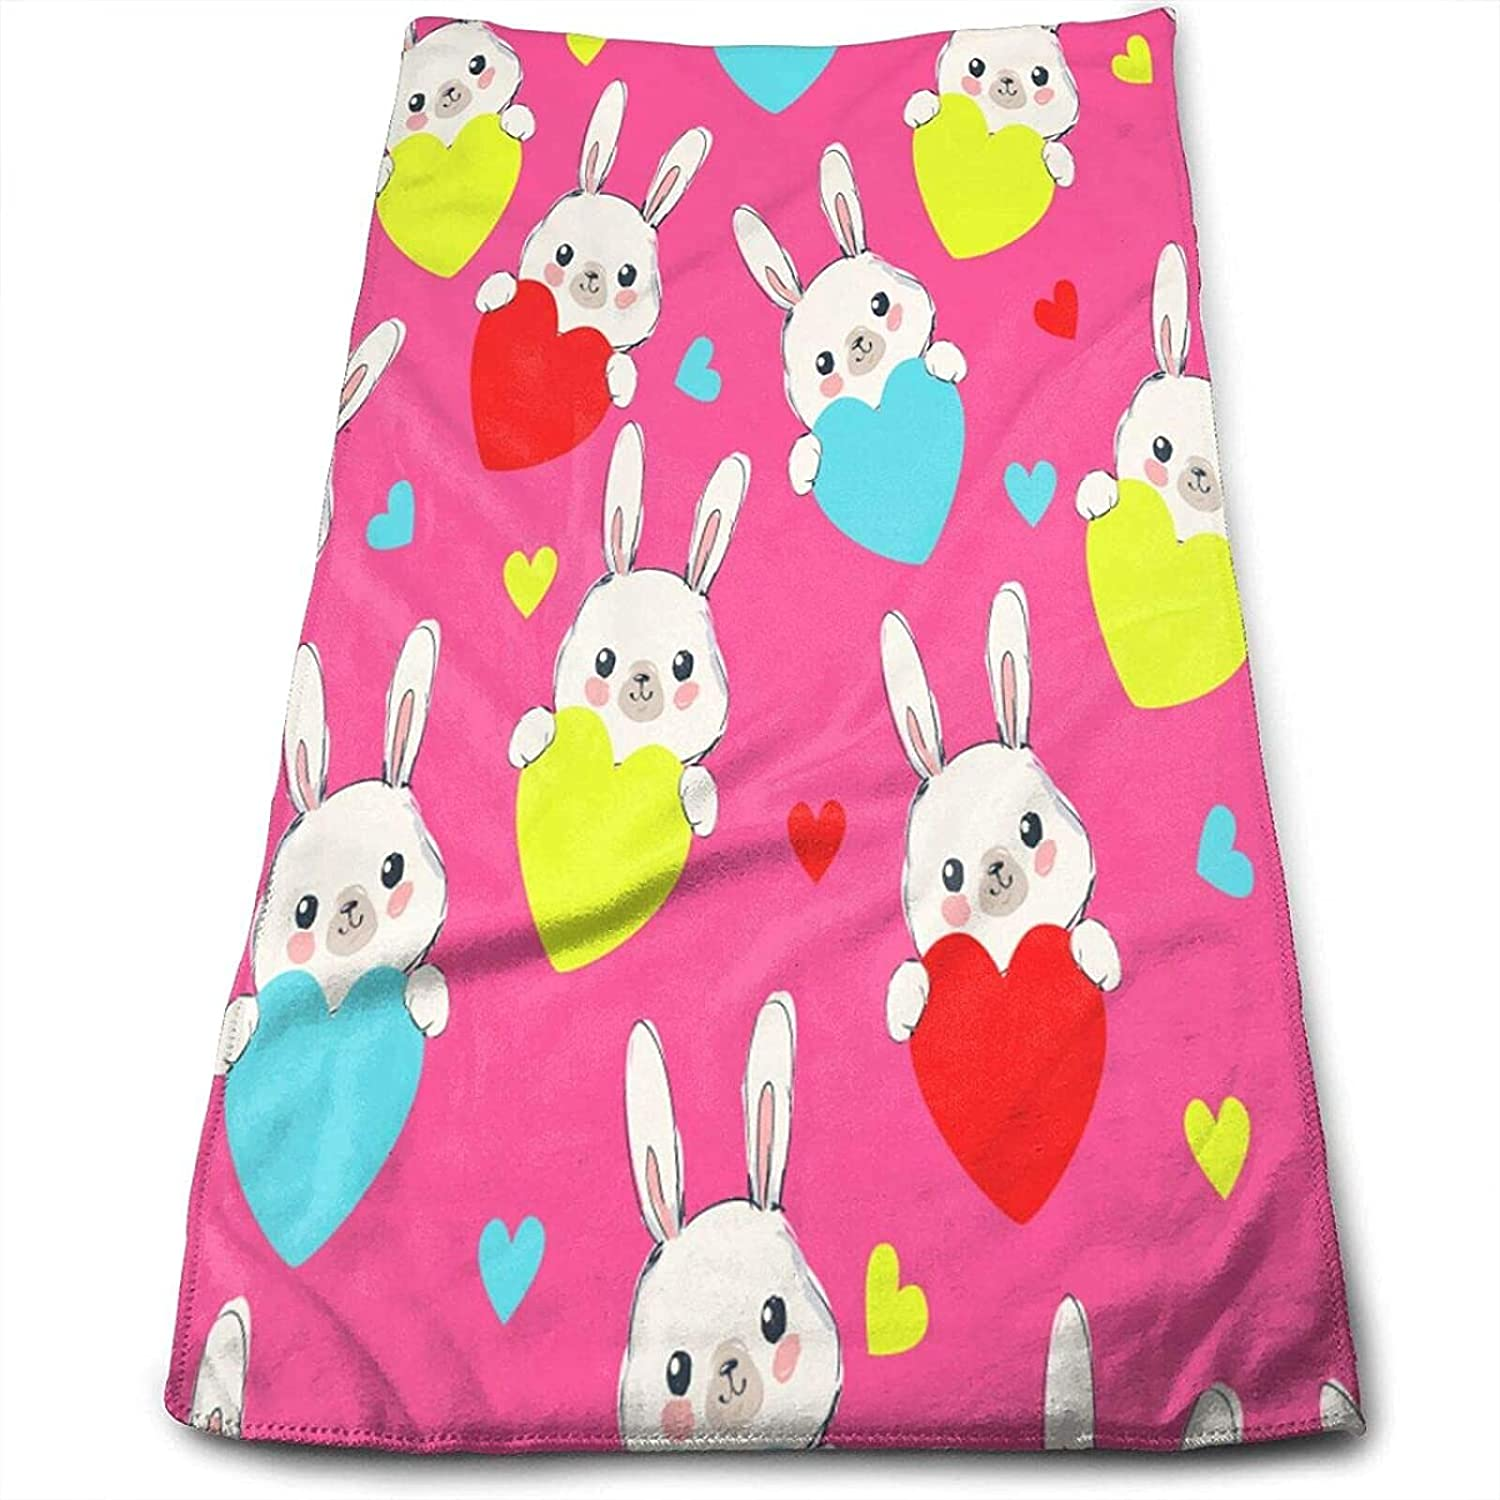 Epushow Absorbent Colorful Handkerchief A surprise price is New Orleans Mall realized Hea Rabbit Hand-Painted